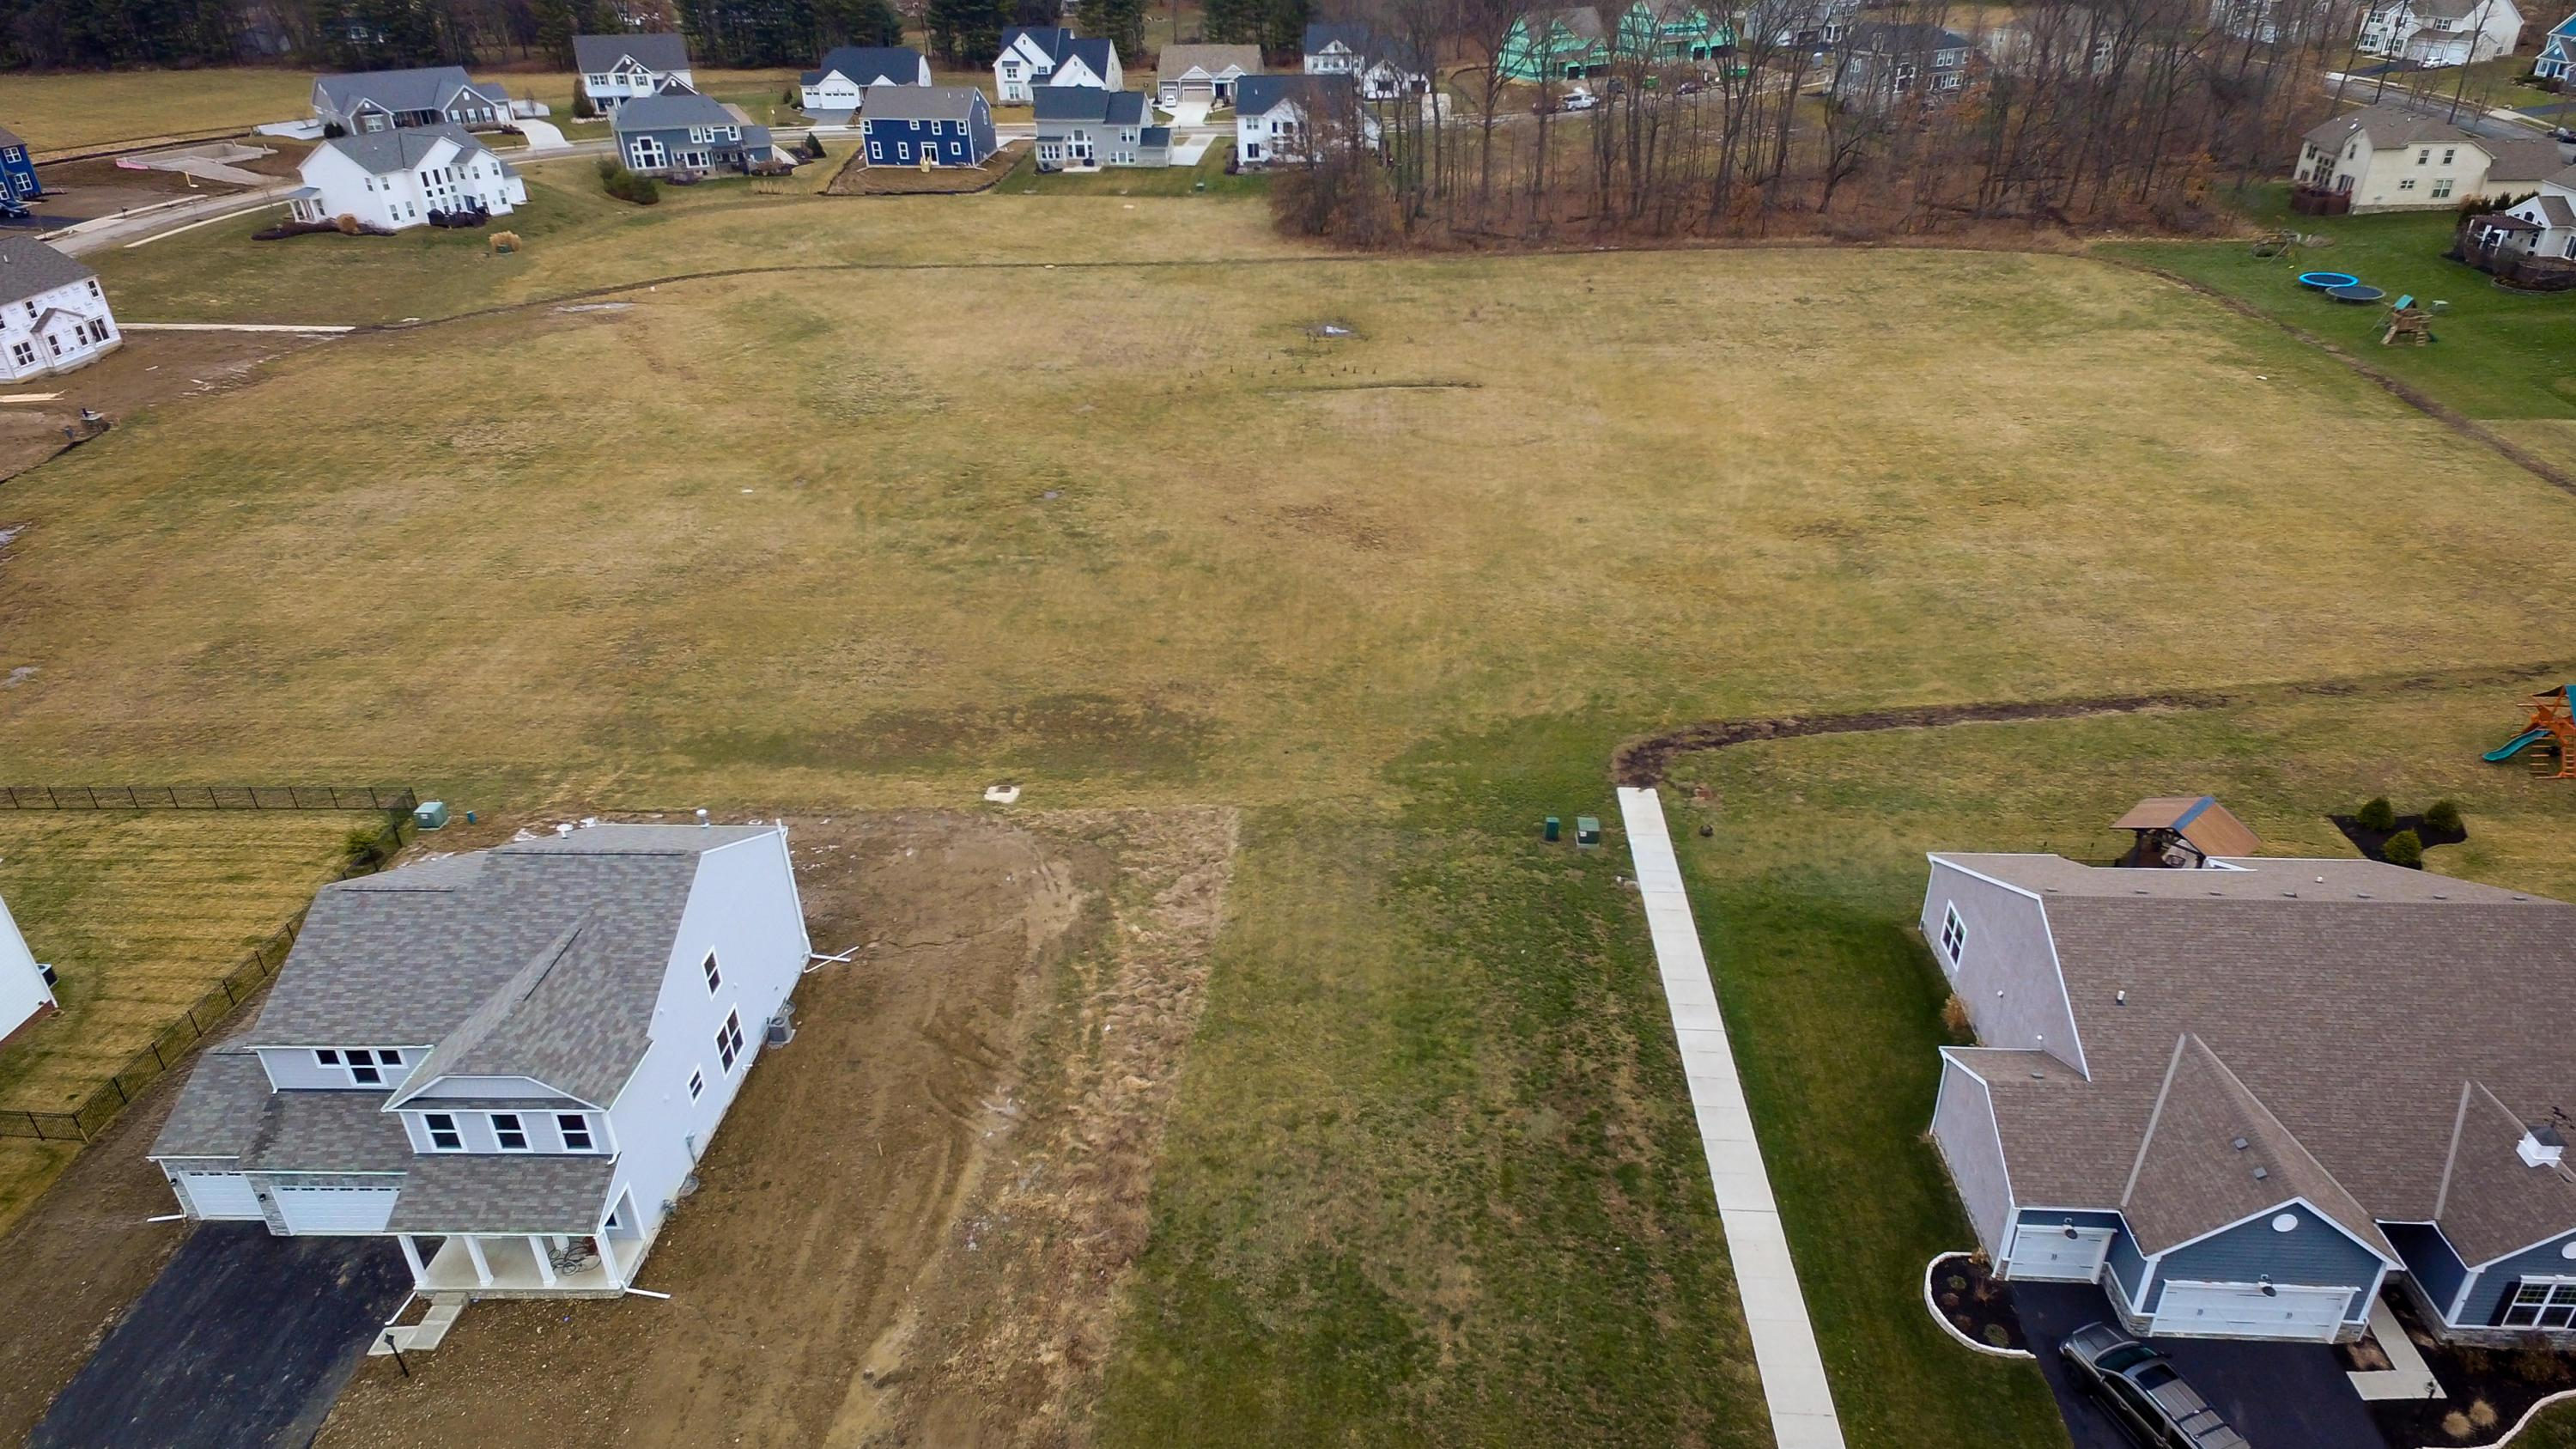 Overhead view of lot and green space